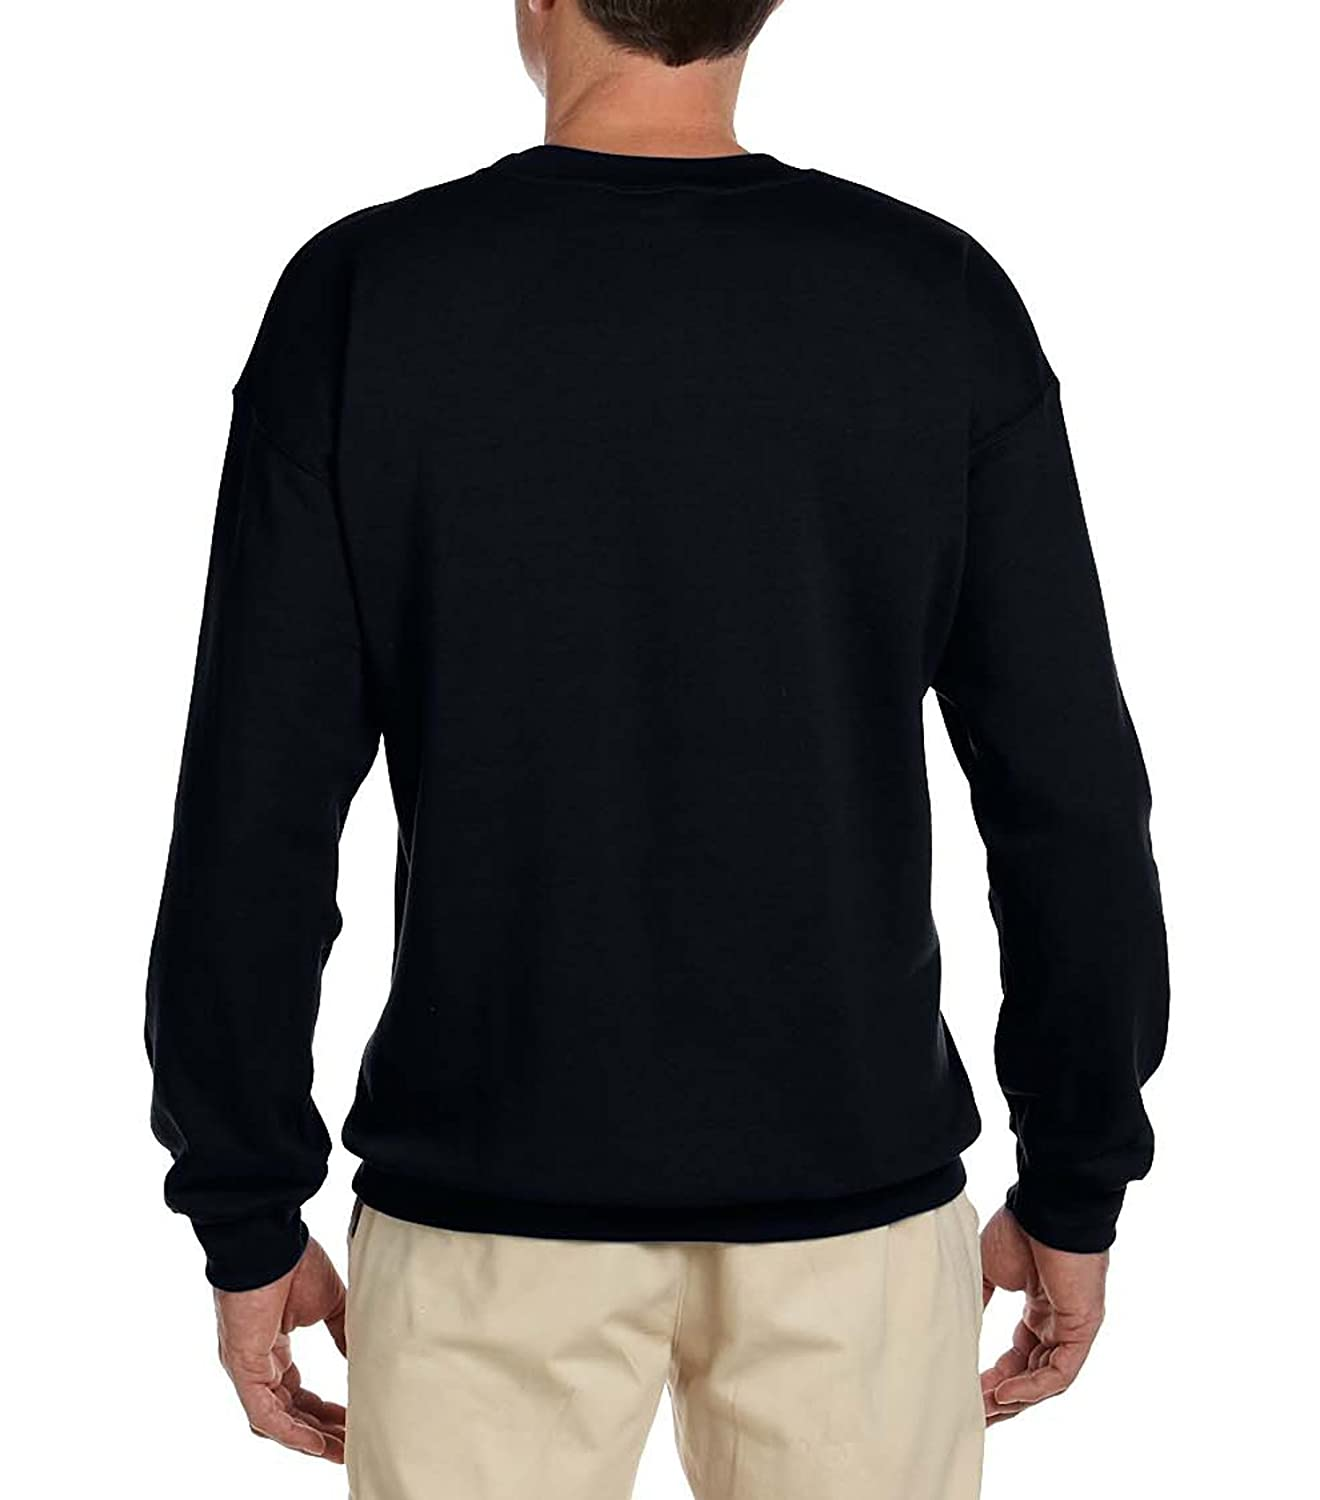 Native American Crewneck Sweatshirt Indian Feathers S-3XL